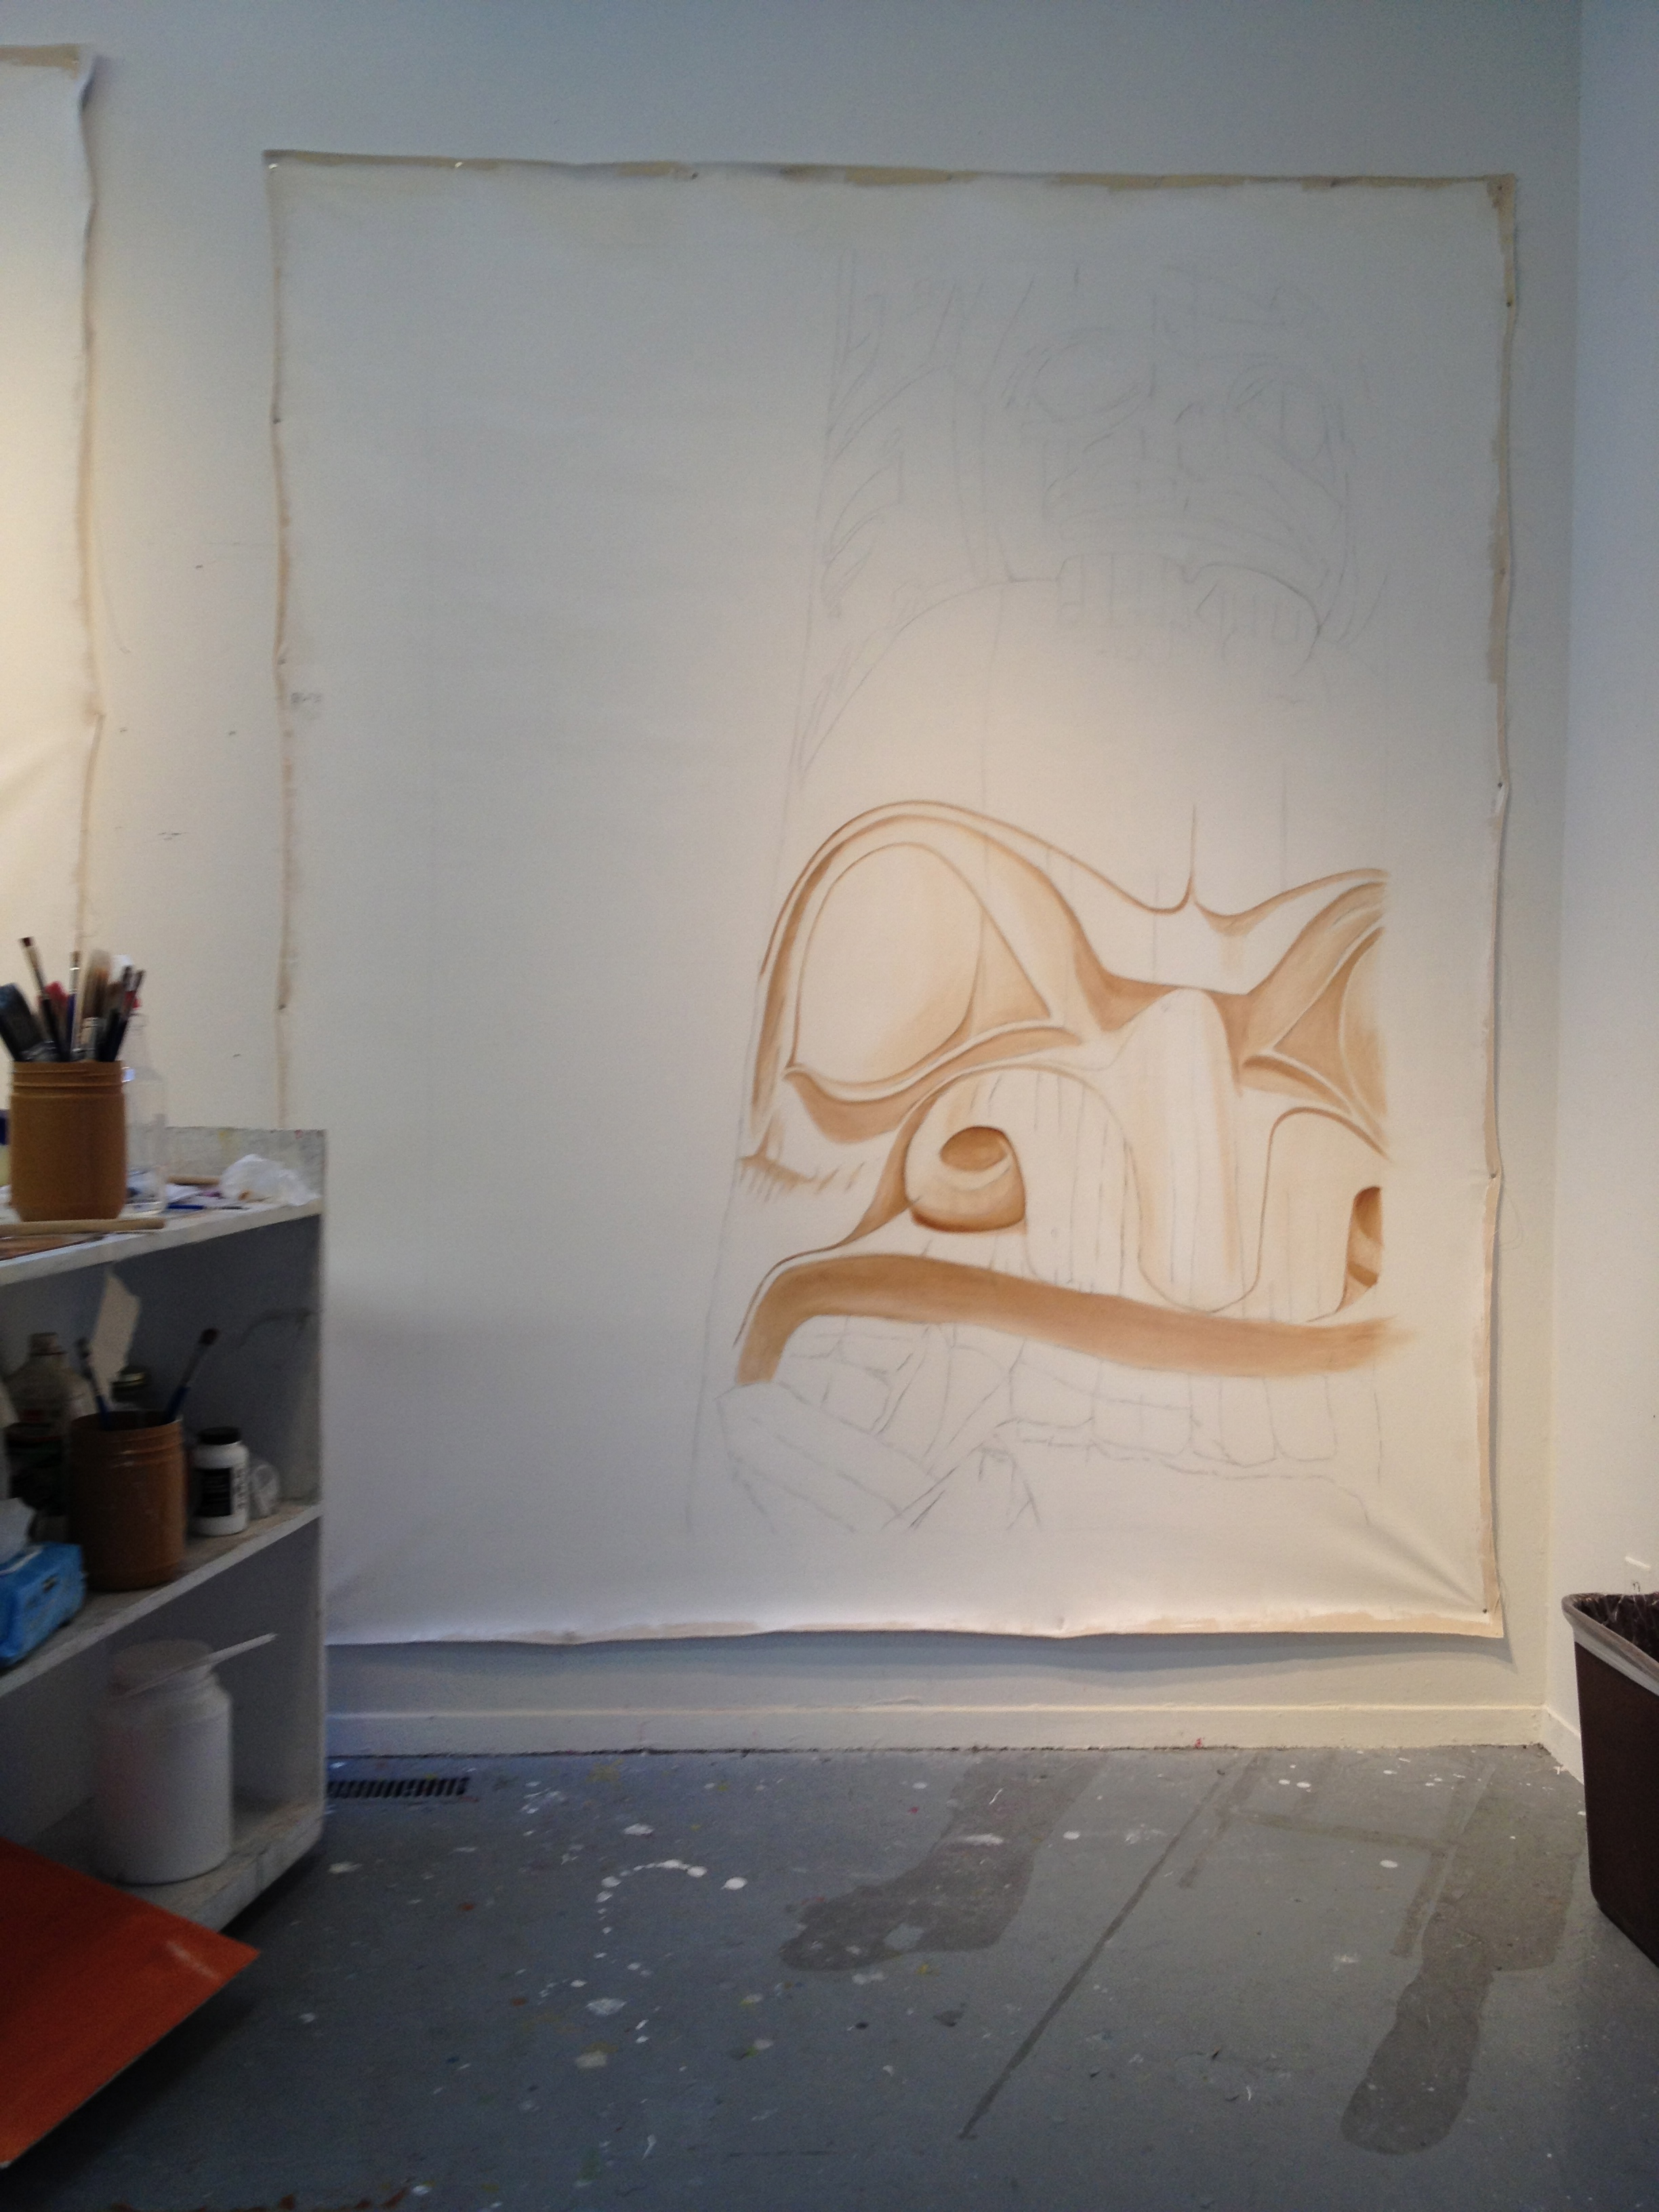 Work In Progress - Gerin-Lajoie Studio at The Banff Centre.